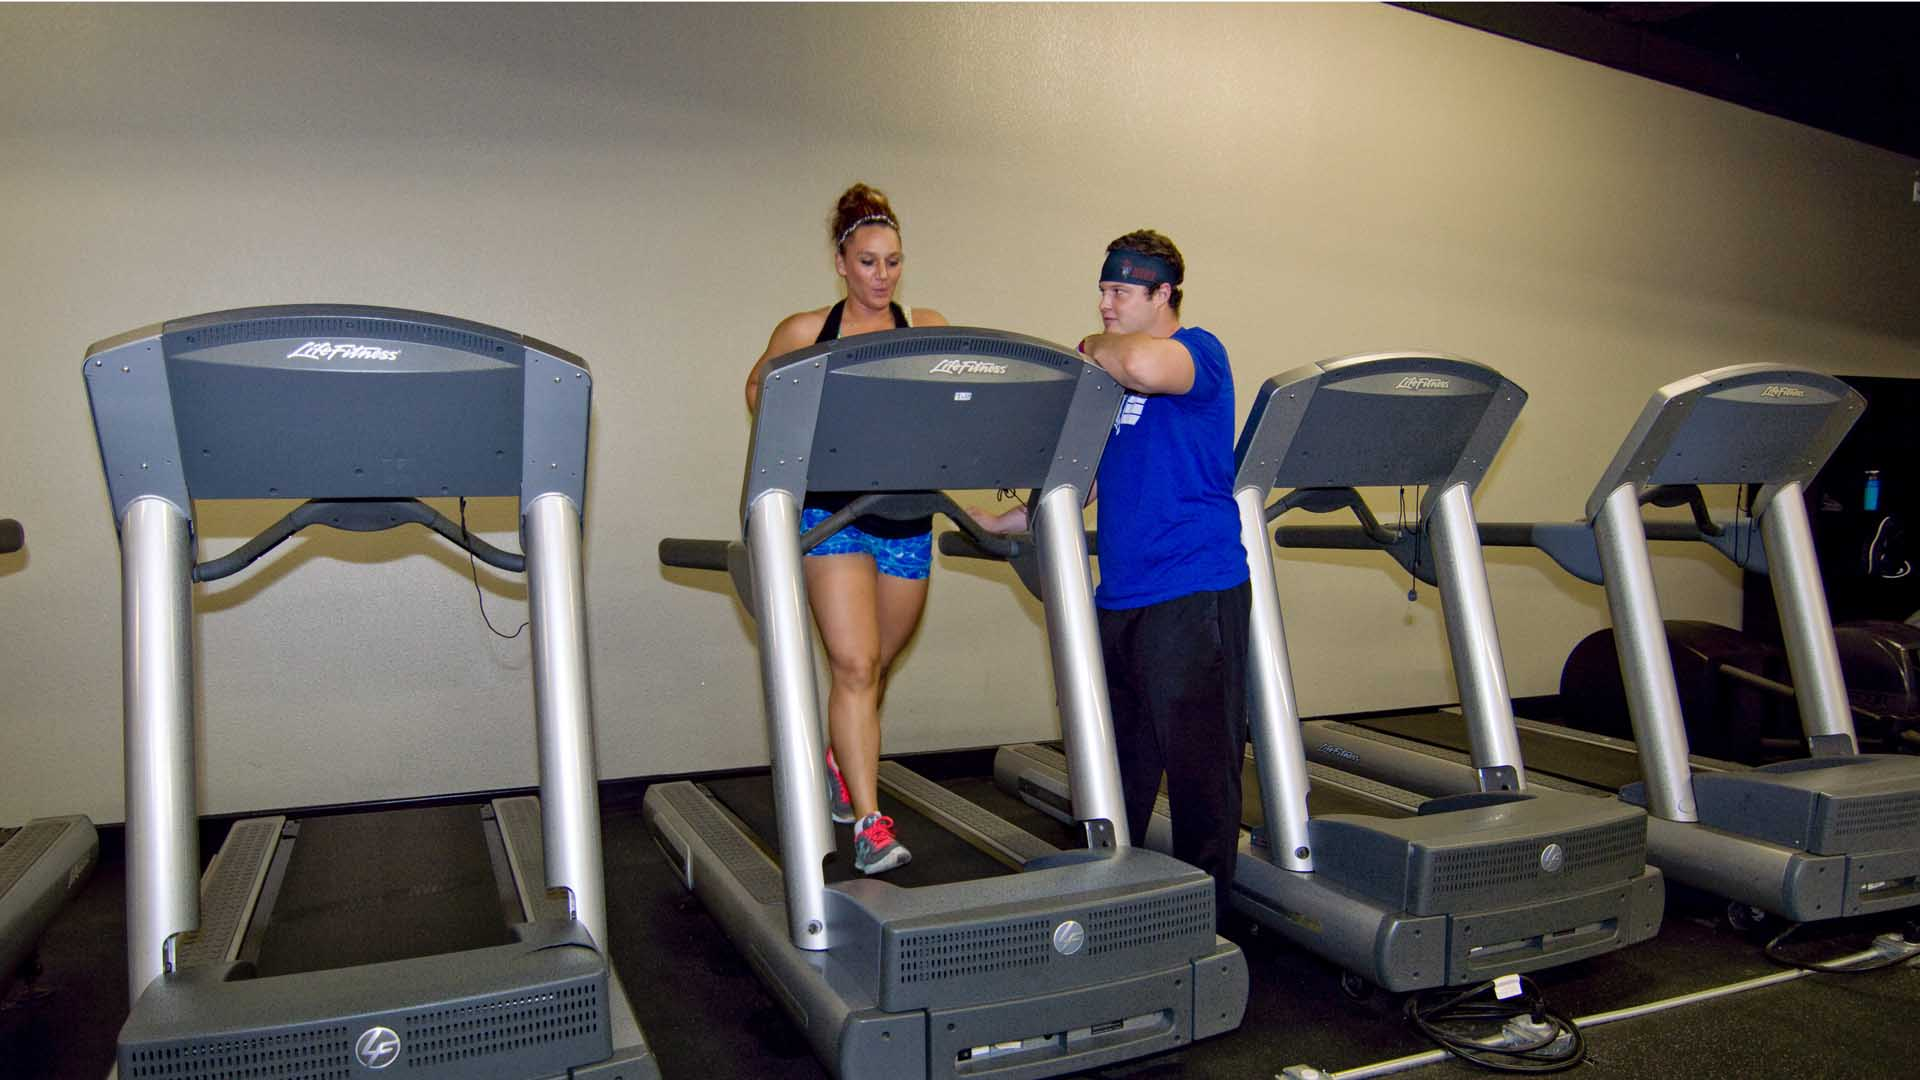 Cody standing with a personal training client walking on a treadmill.